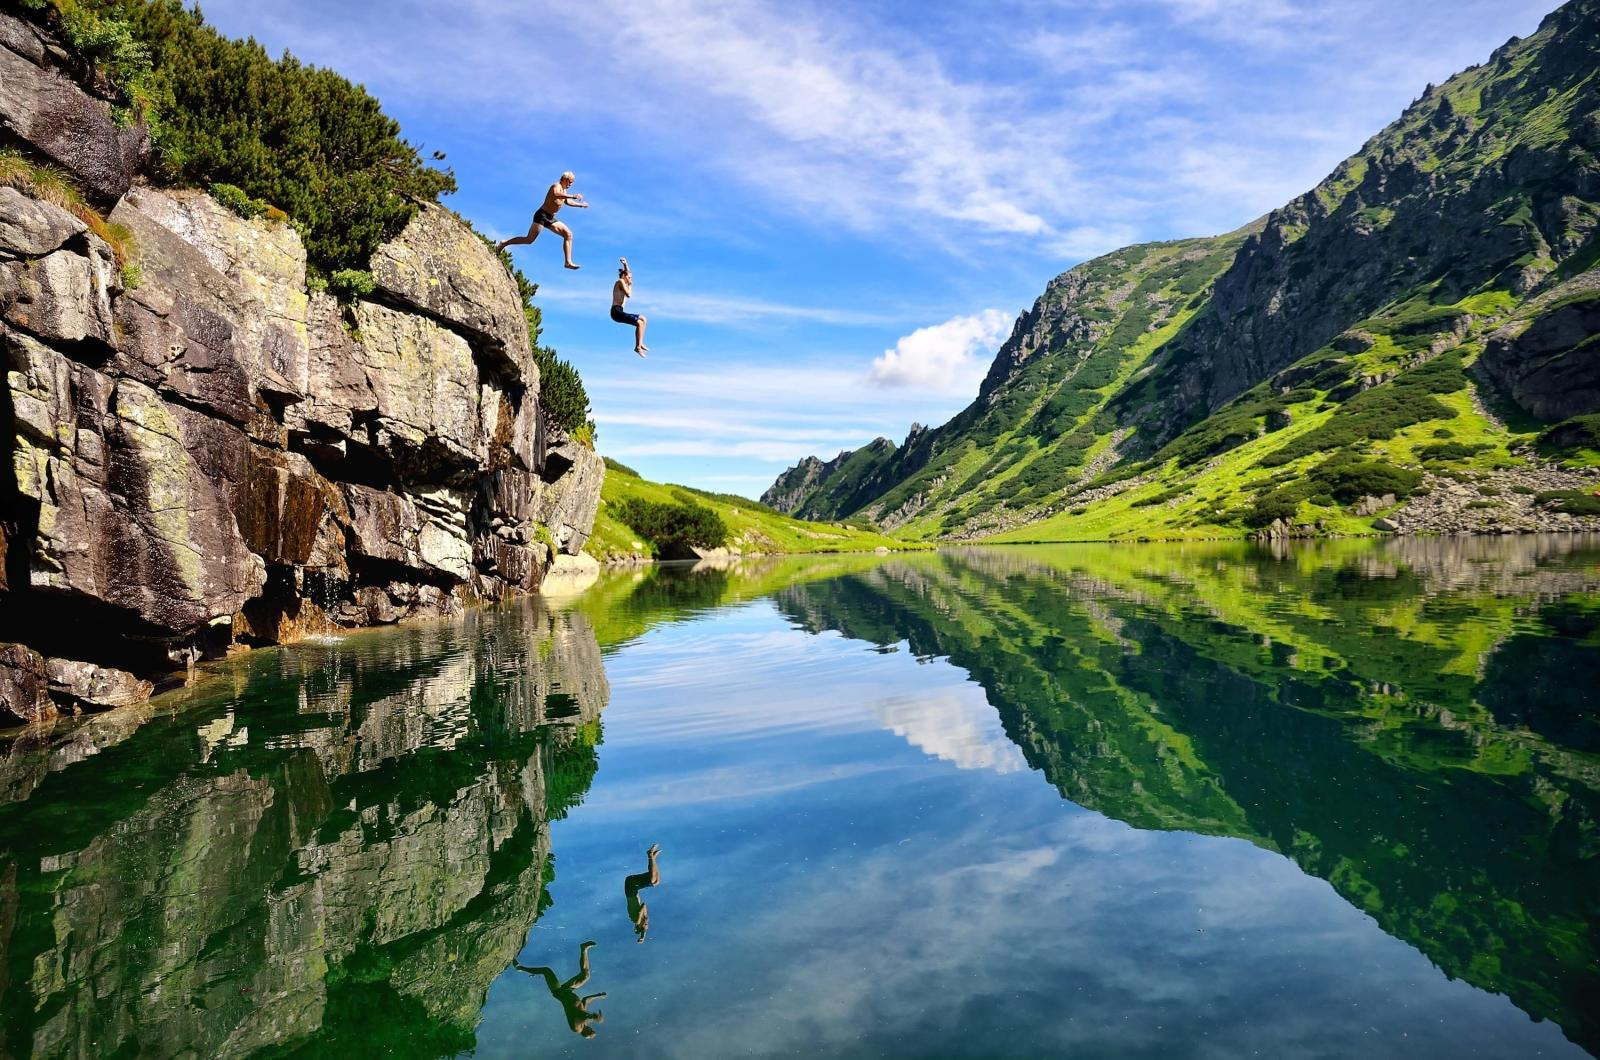 Two travellers enjoy their adventure by jumping off a cliff into water